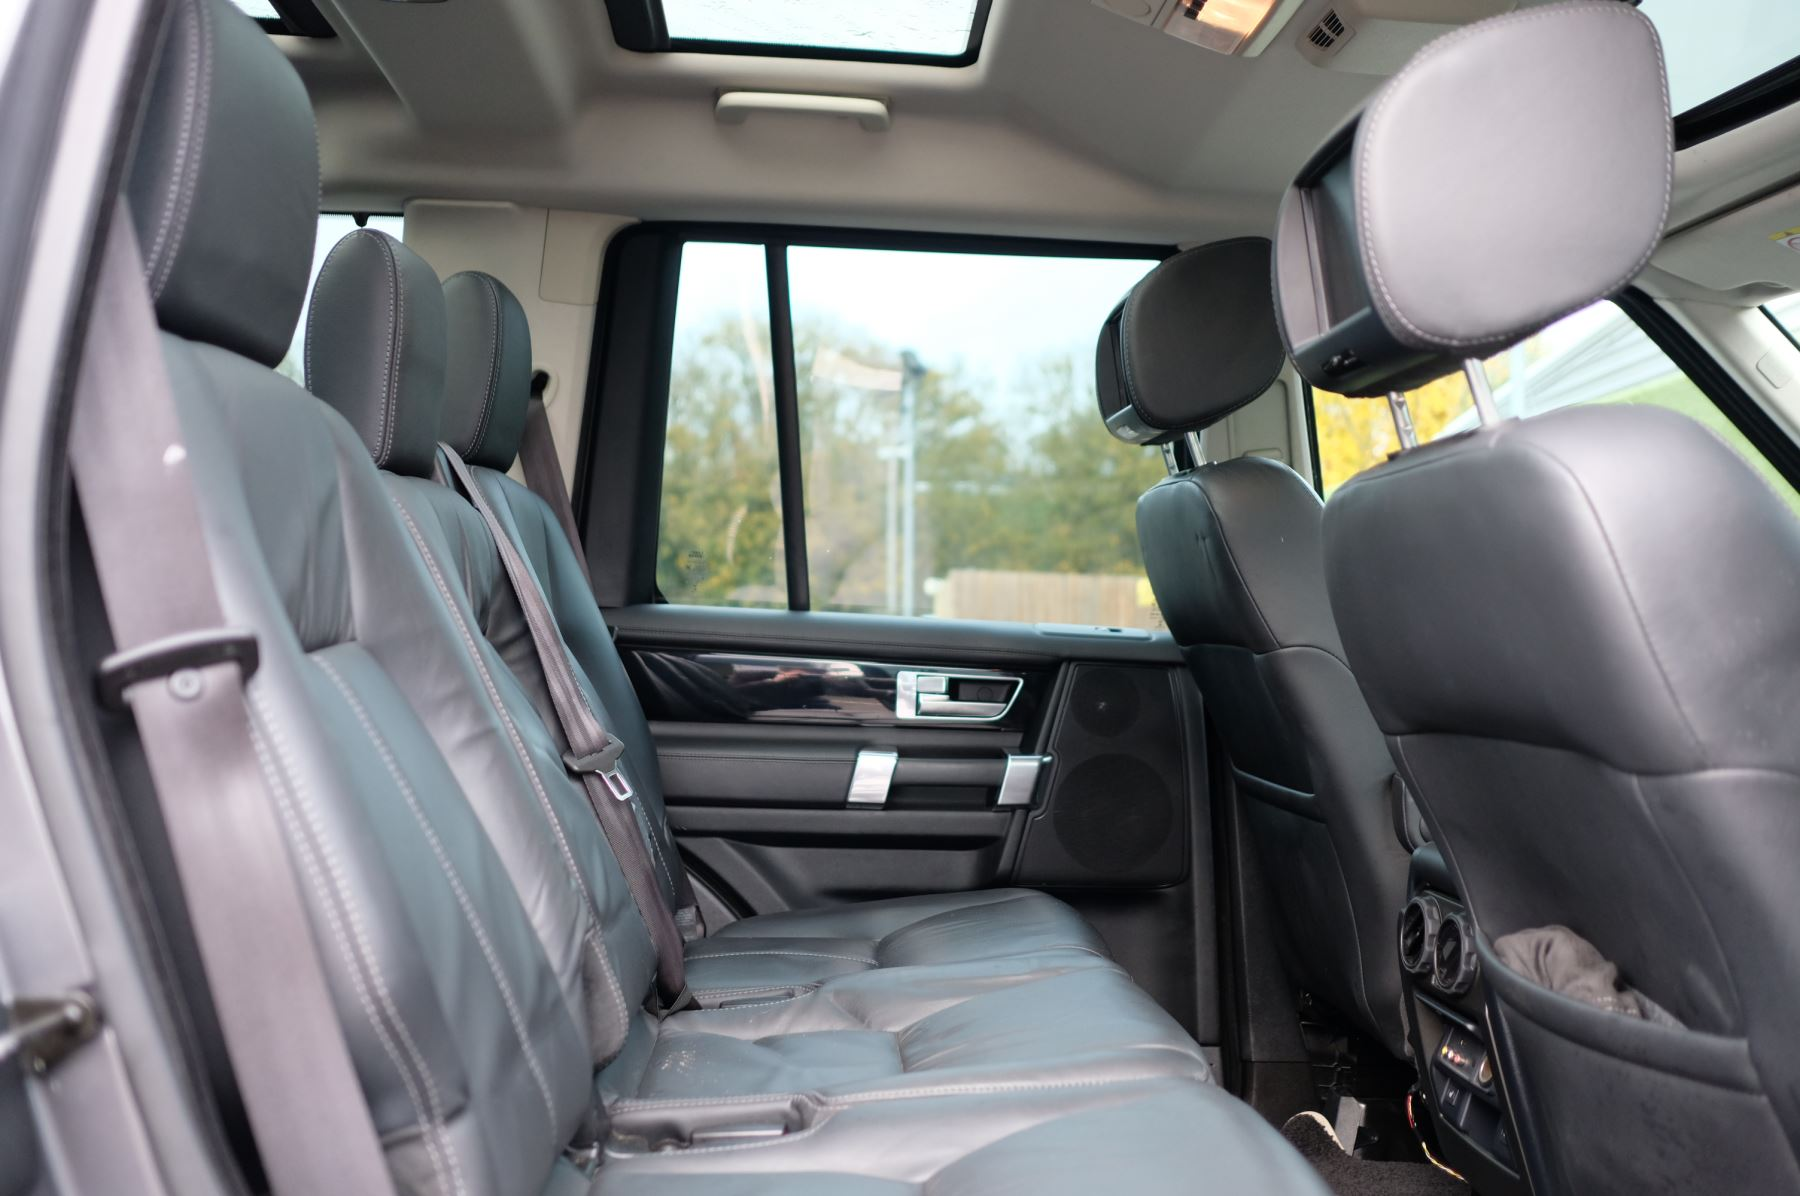 Land Rover Discovery 3.0 SDV6 HSE Luxury 5dr image 13